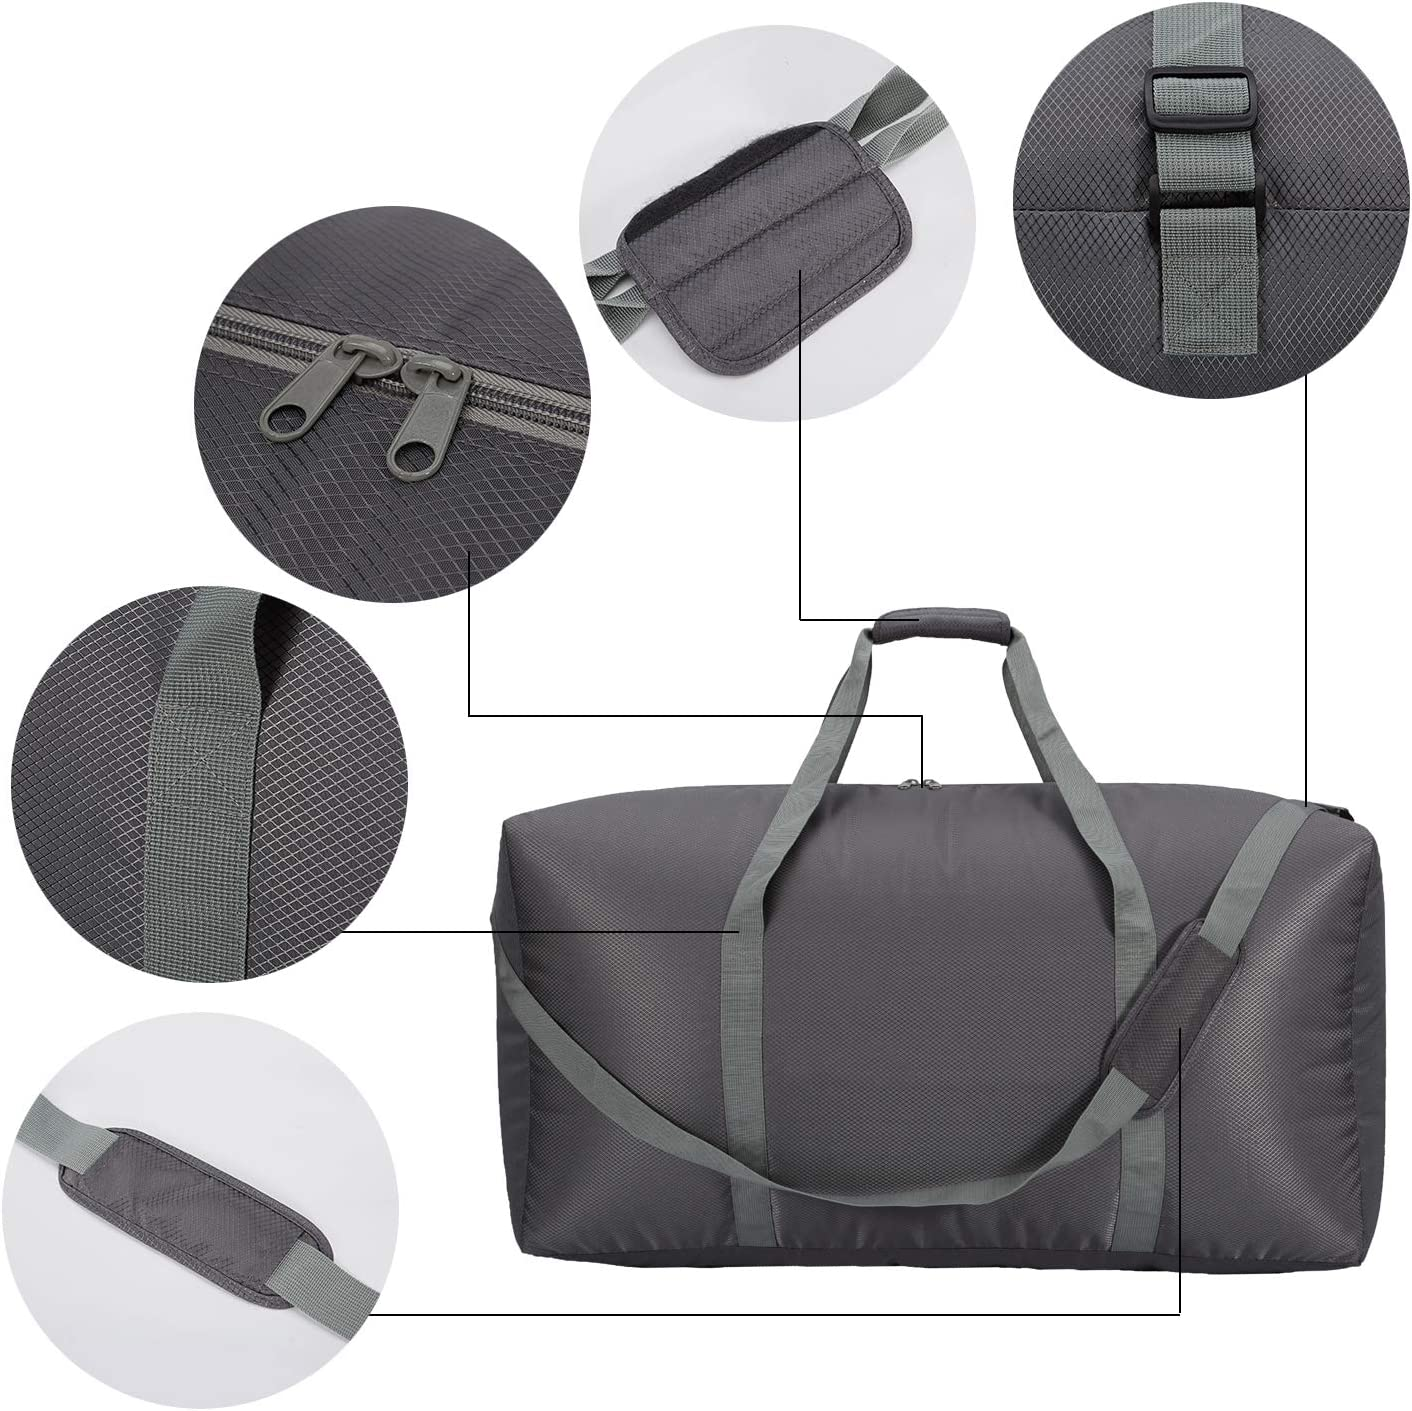 Extra Large Duffel Bag 32.5 inch Lightweight Luggage for Travel